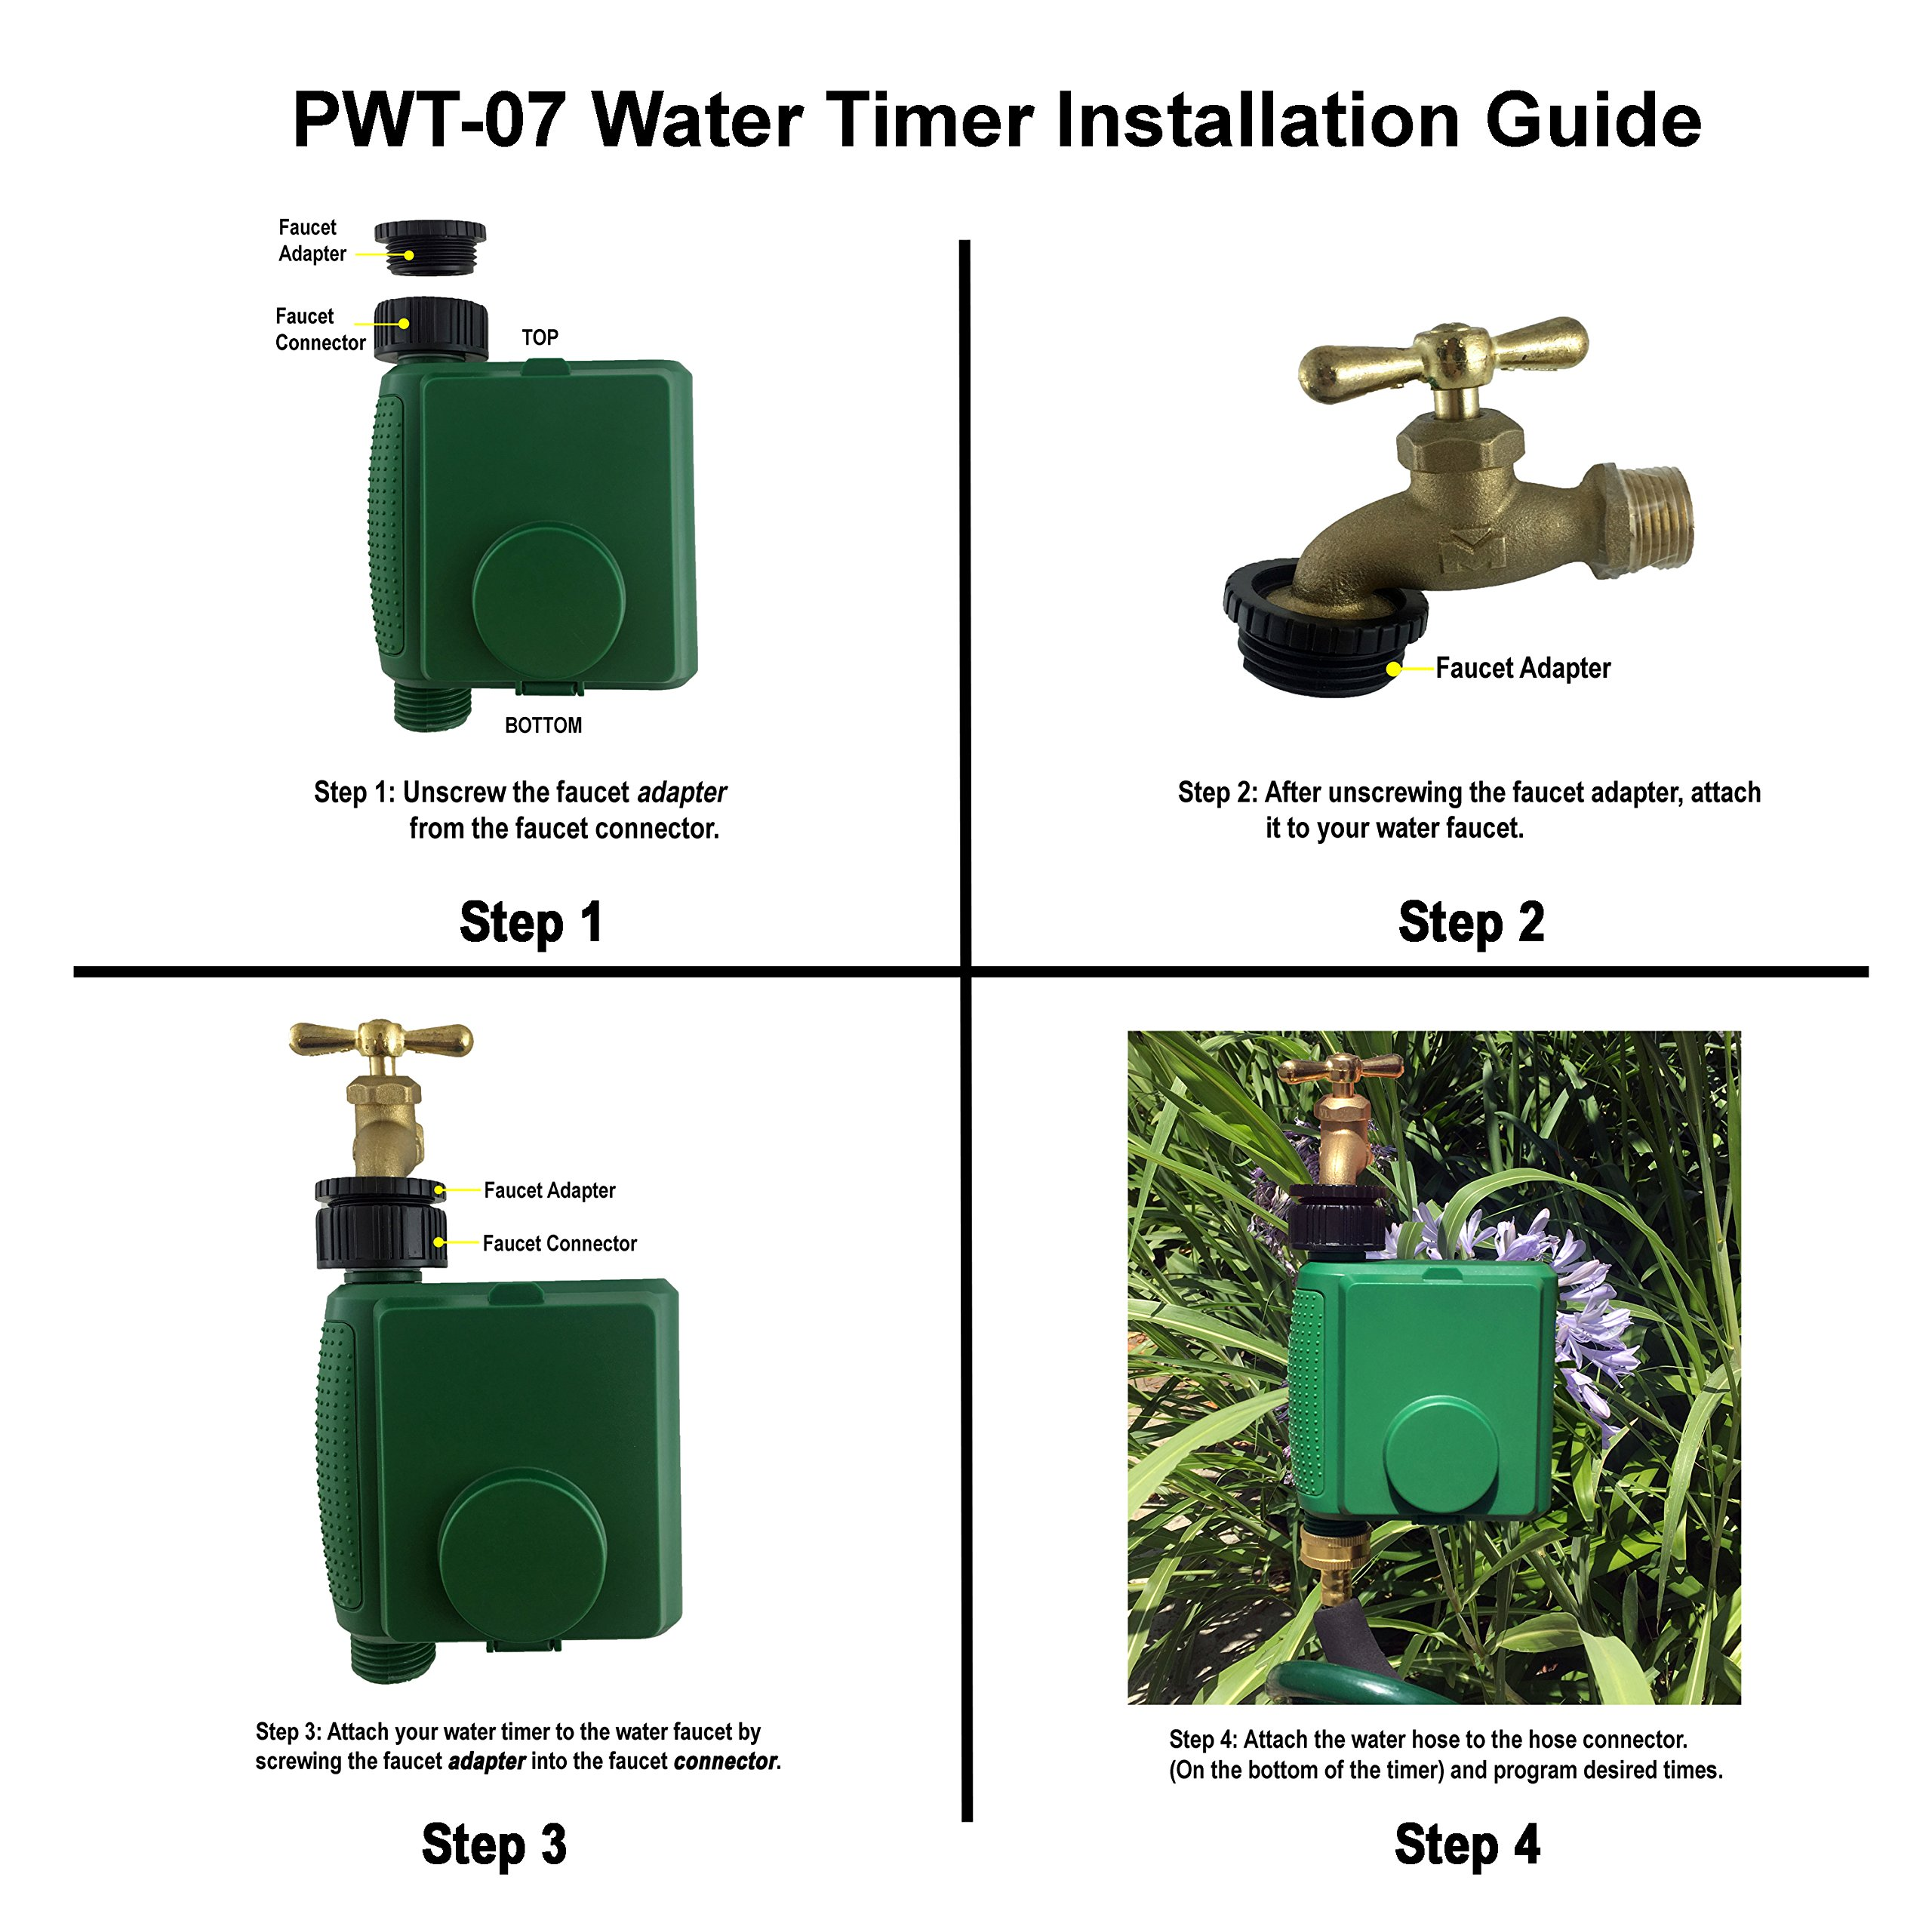 Instapark PWT-07 Outdoor Waterproof Digital Programmable Single Outlet Automatic On Off Water Faucet Hose Timer with Rain Delay and Manual Control by Instapark (Image #6)